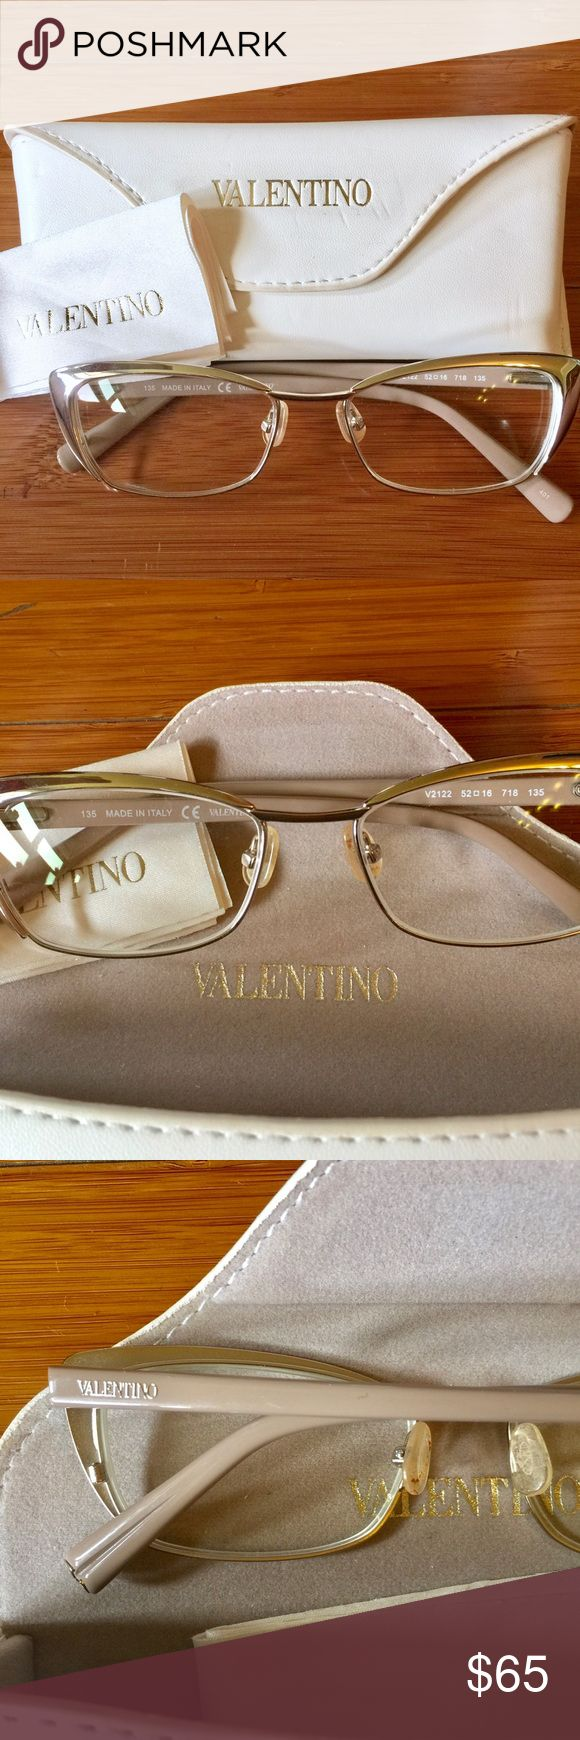 Valentino prescription eyeglasses Valentino prescription eyeglasses. I am not sure what the prescription is but they can be fitted with any lenses. Beautiful hardly worn excellent condition. Comes with case and cleaning cloth. The case has a couple marks on it but totally clean in good condition. Valentino Accessories Glasses